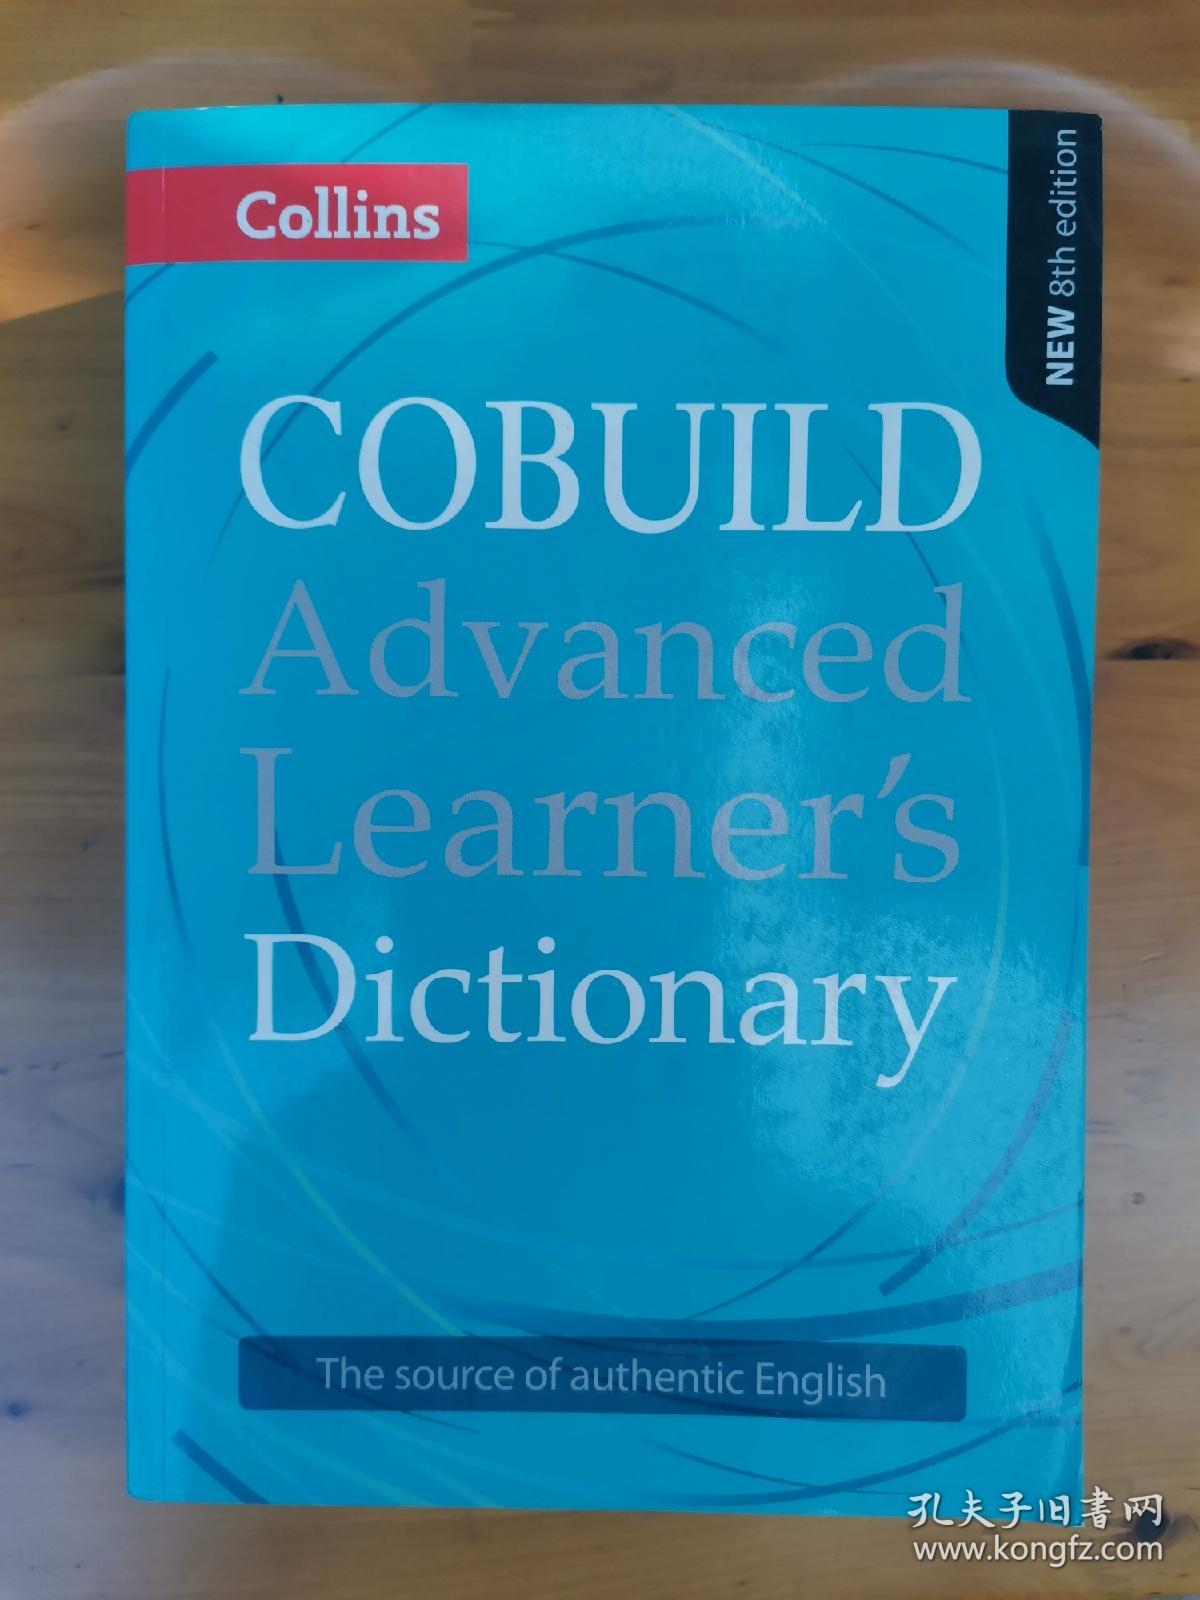 Collins COBUILD Advanced Learner's Dictionary'